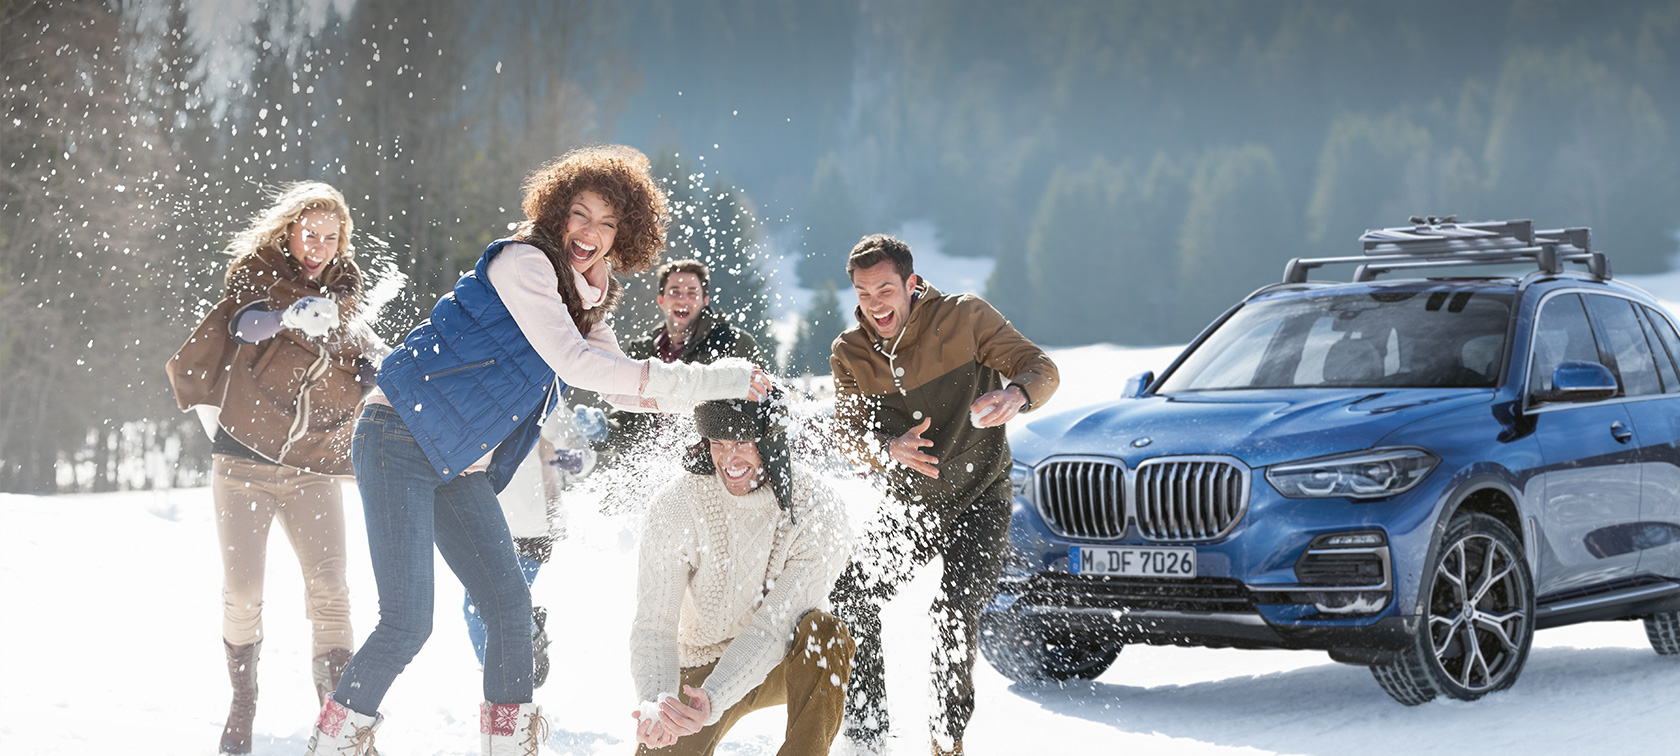 Women and men laughing in the snow in front of a BMW